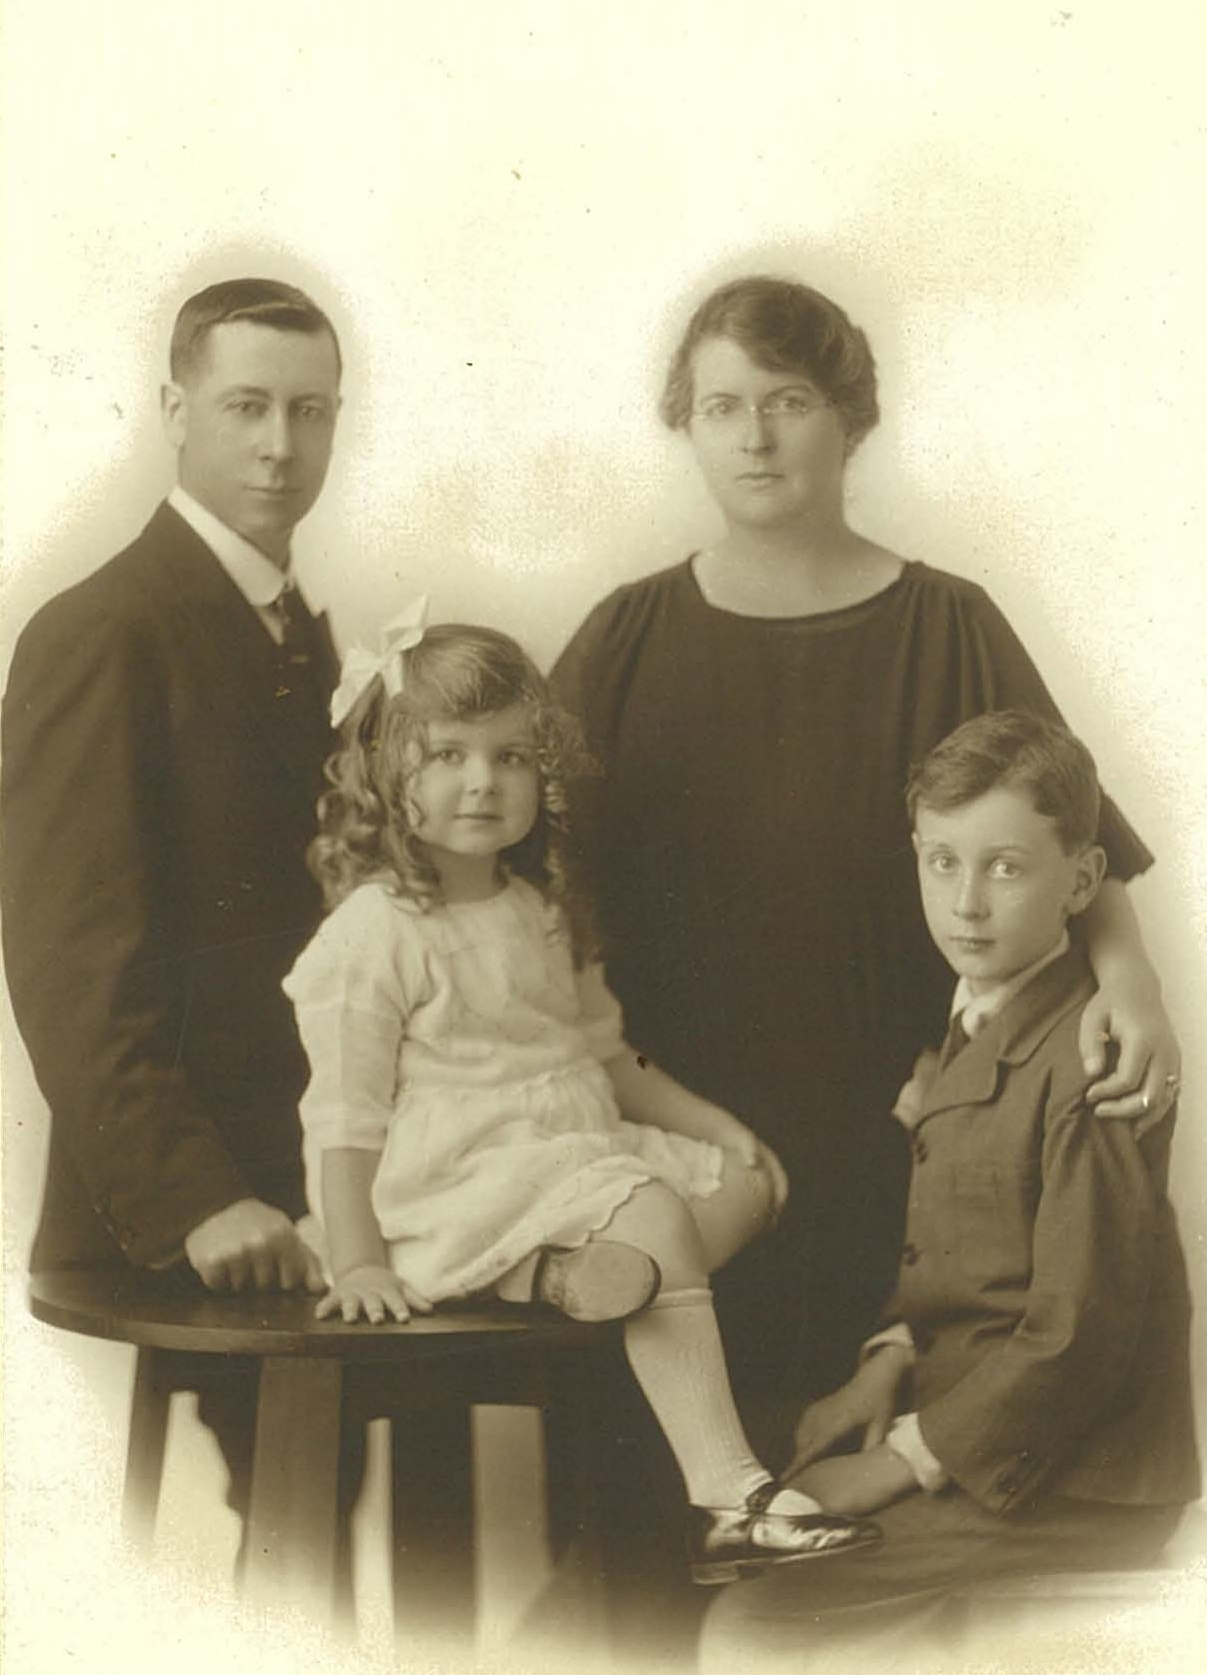 Formal photograph of the Whitlam Family, 1923.